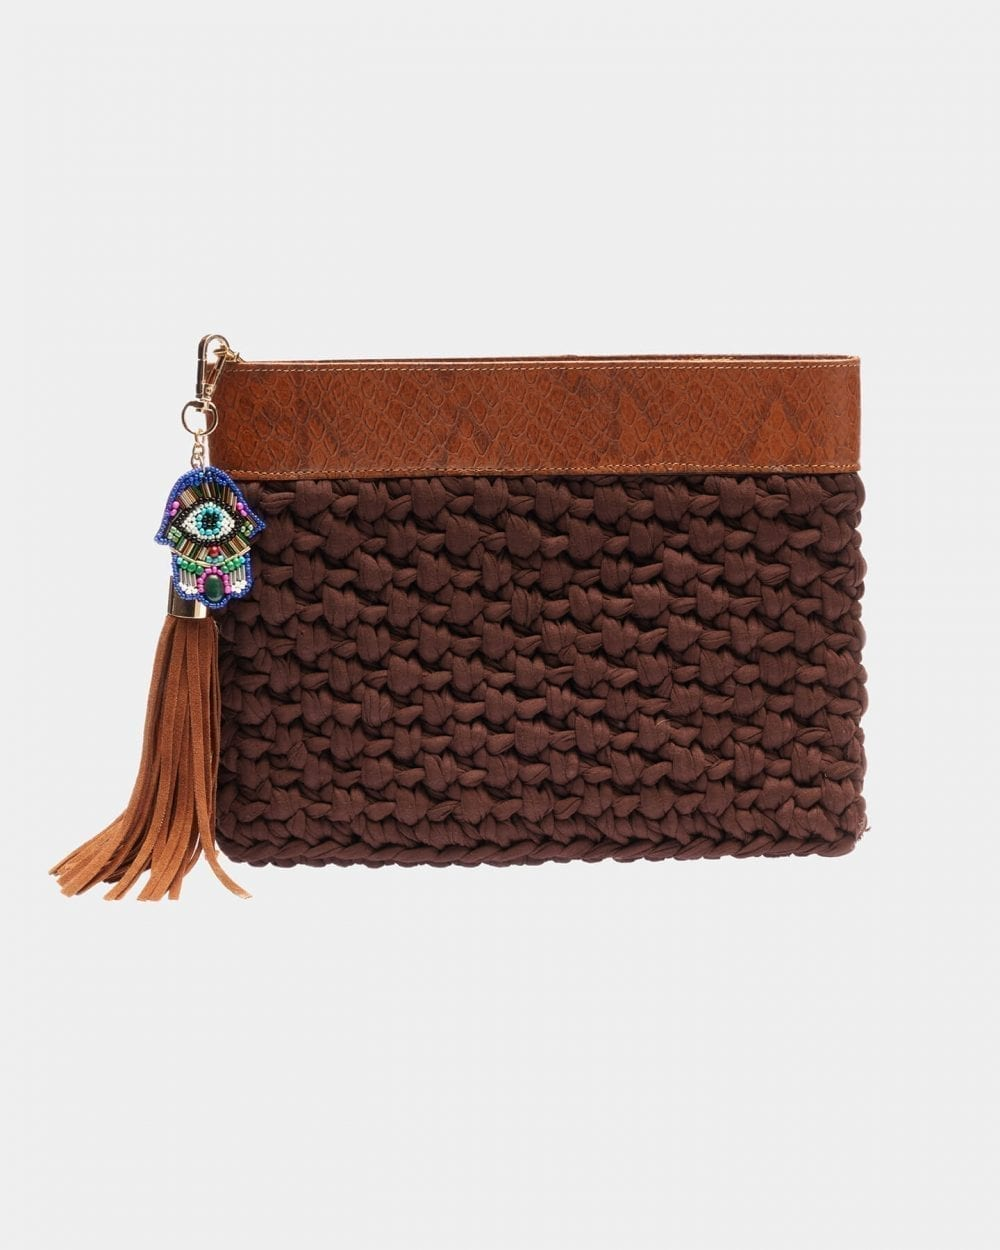 Picard Brown clutch by ALLBYB Design, Philadelphia